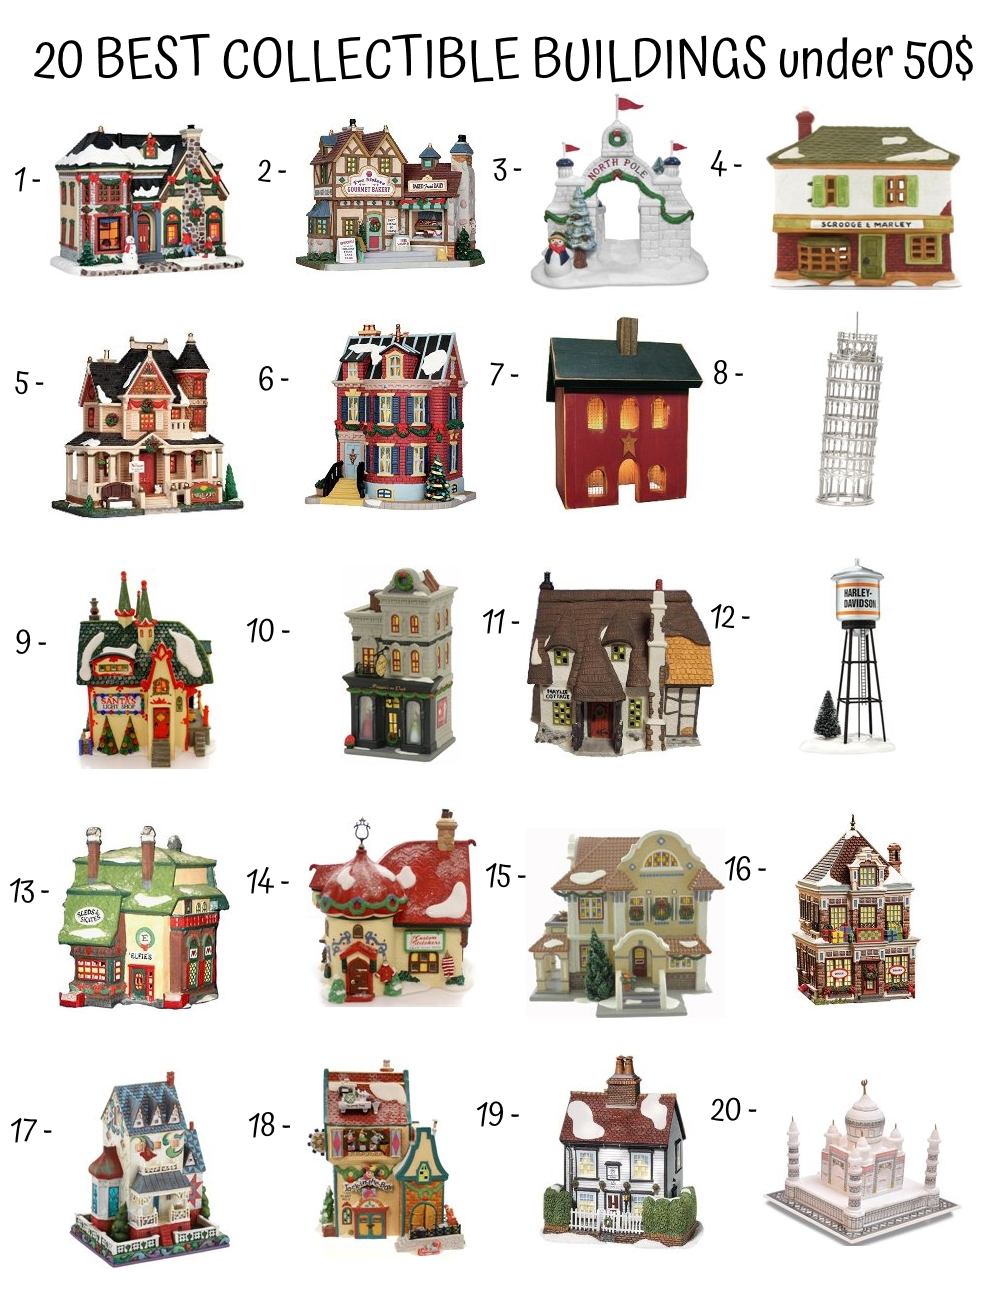 20 Best Collectible Buildings Under 50$